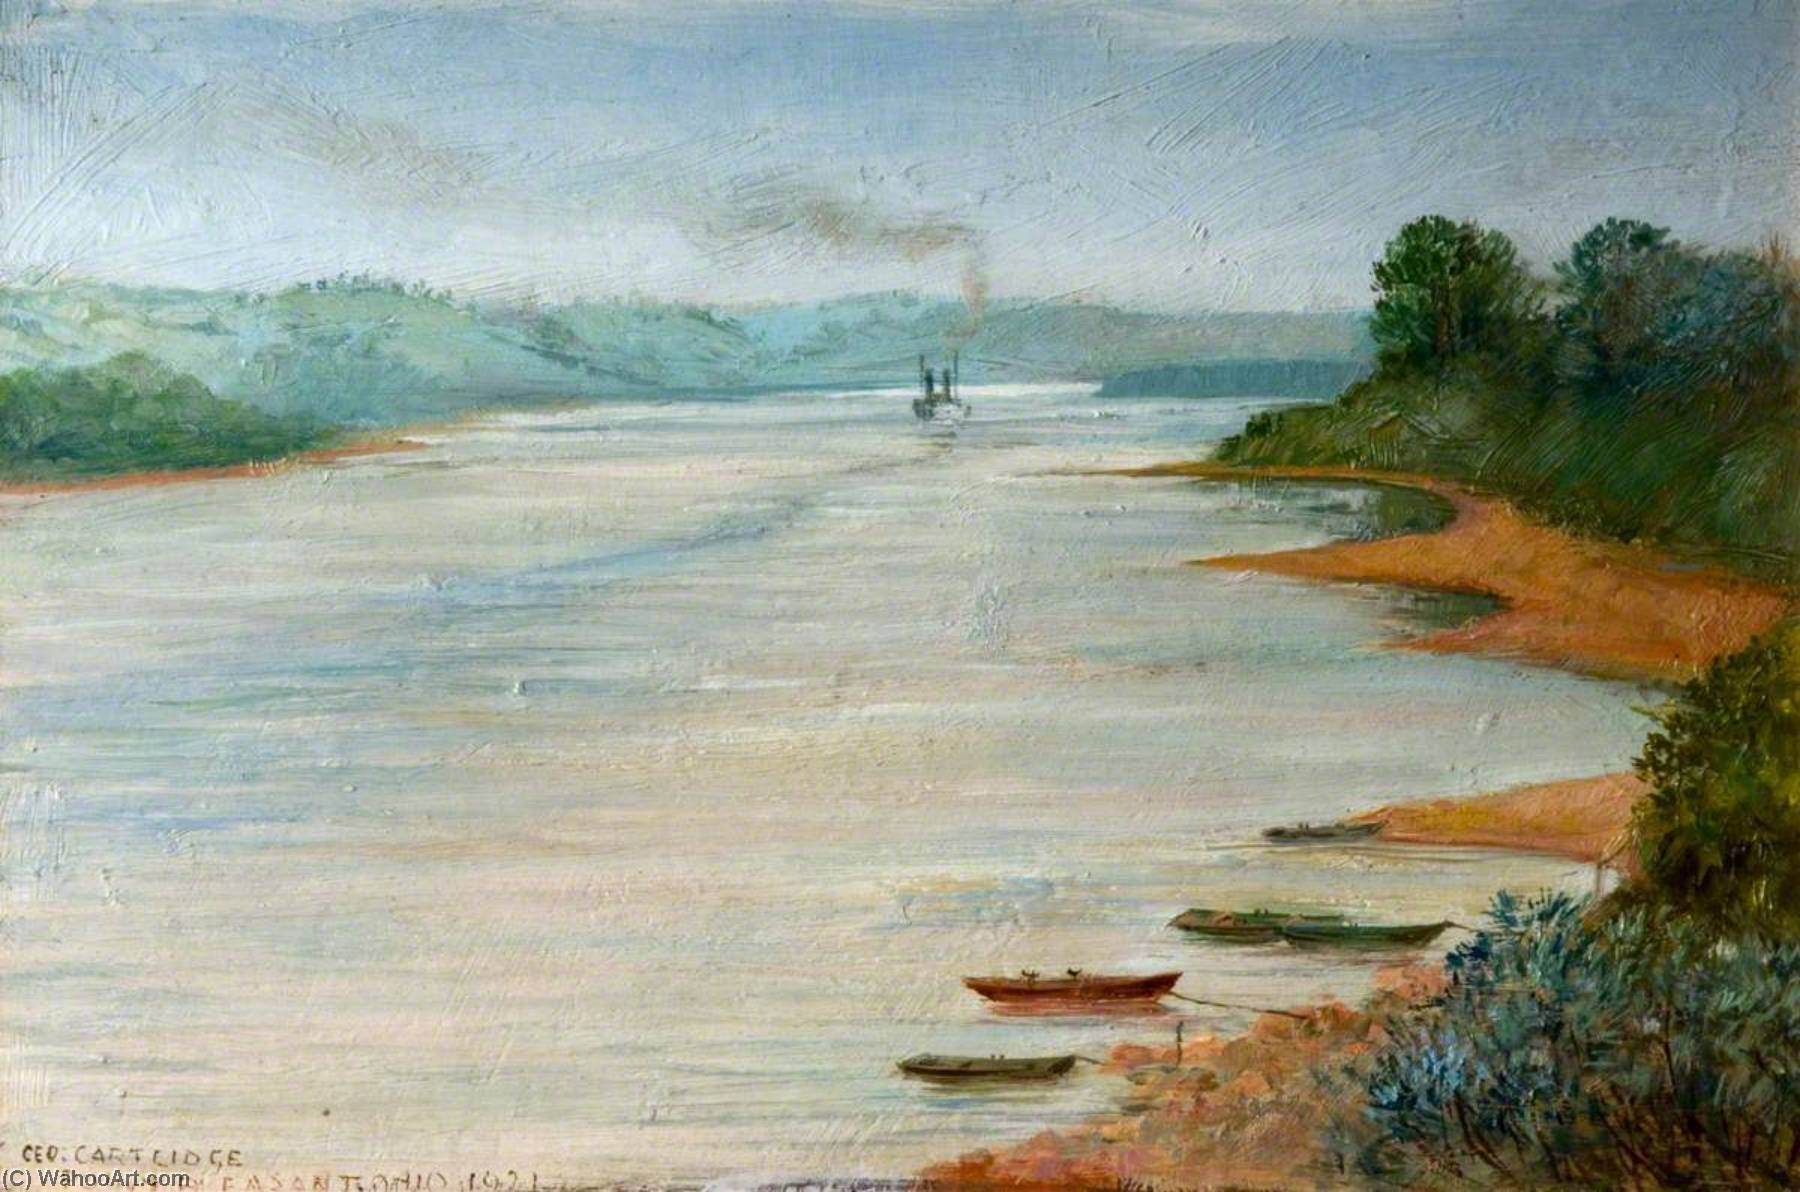 point agréable , Ohio , ETATS-UNIS, 1921 de George Cartlidge | Reproduction Peinture | WahooArt.com